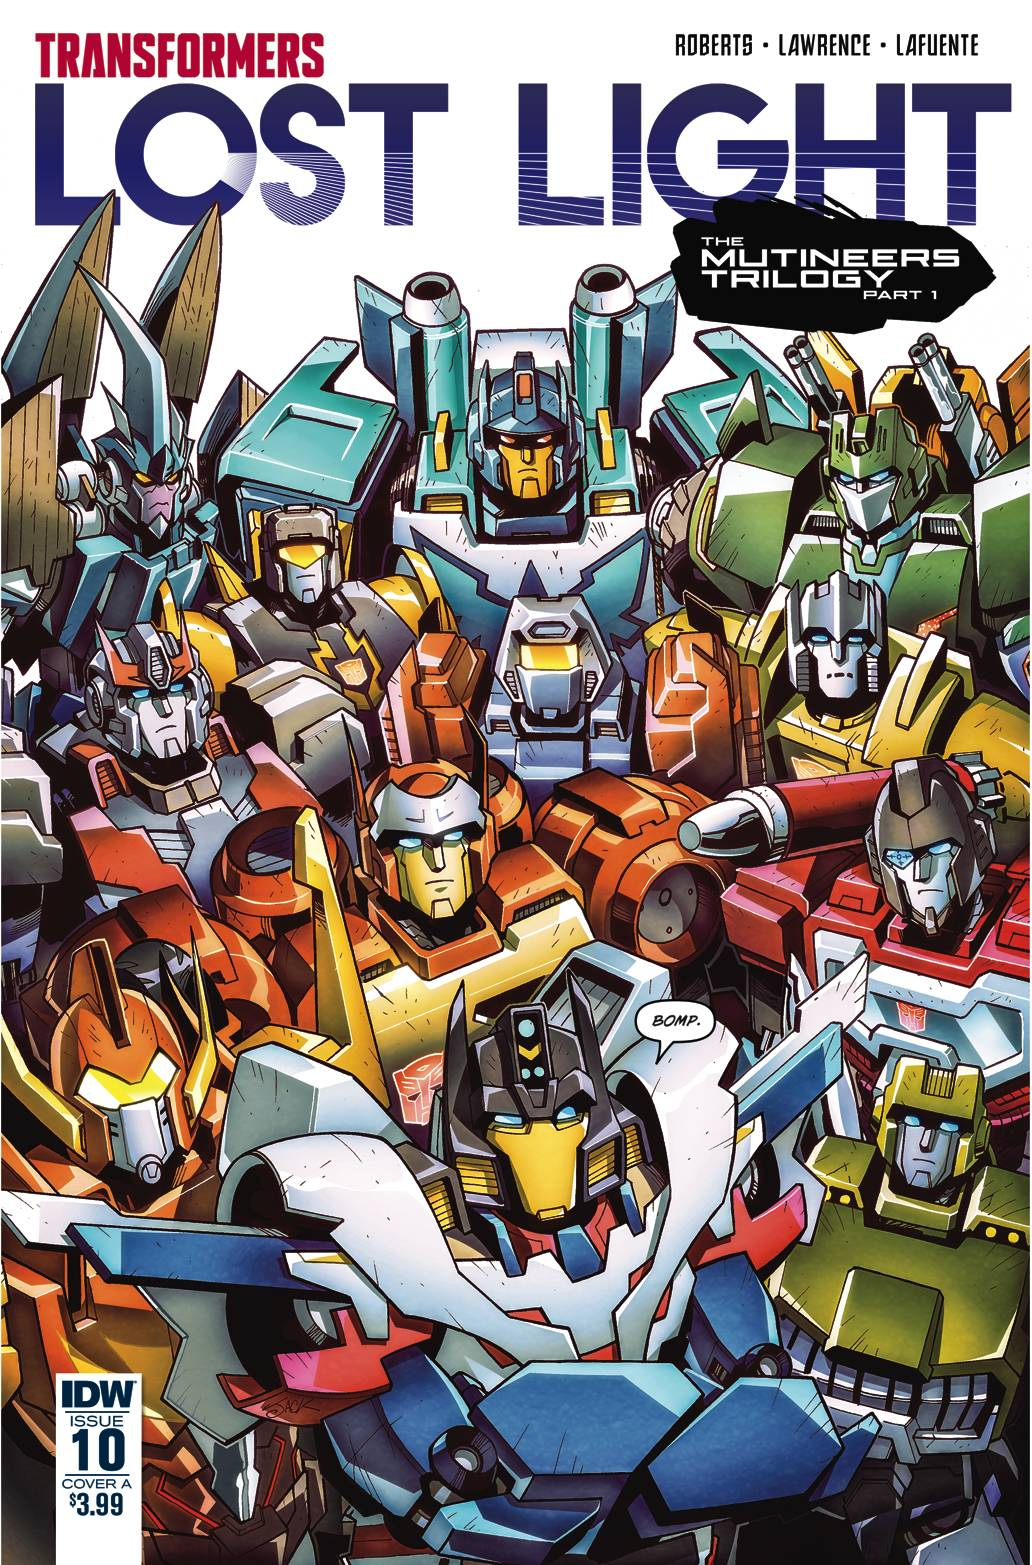 transformers lost light #10 cover a lawrence